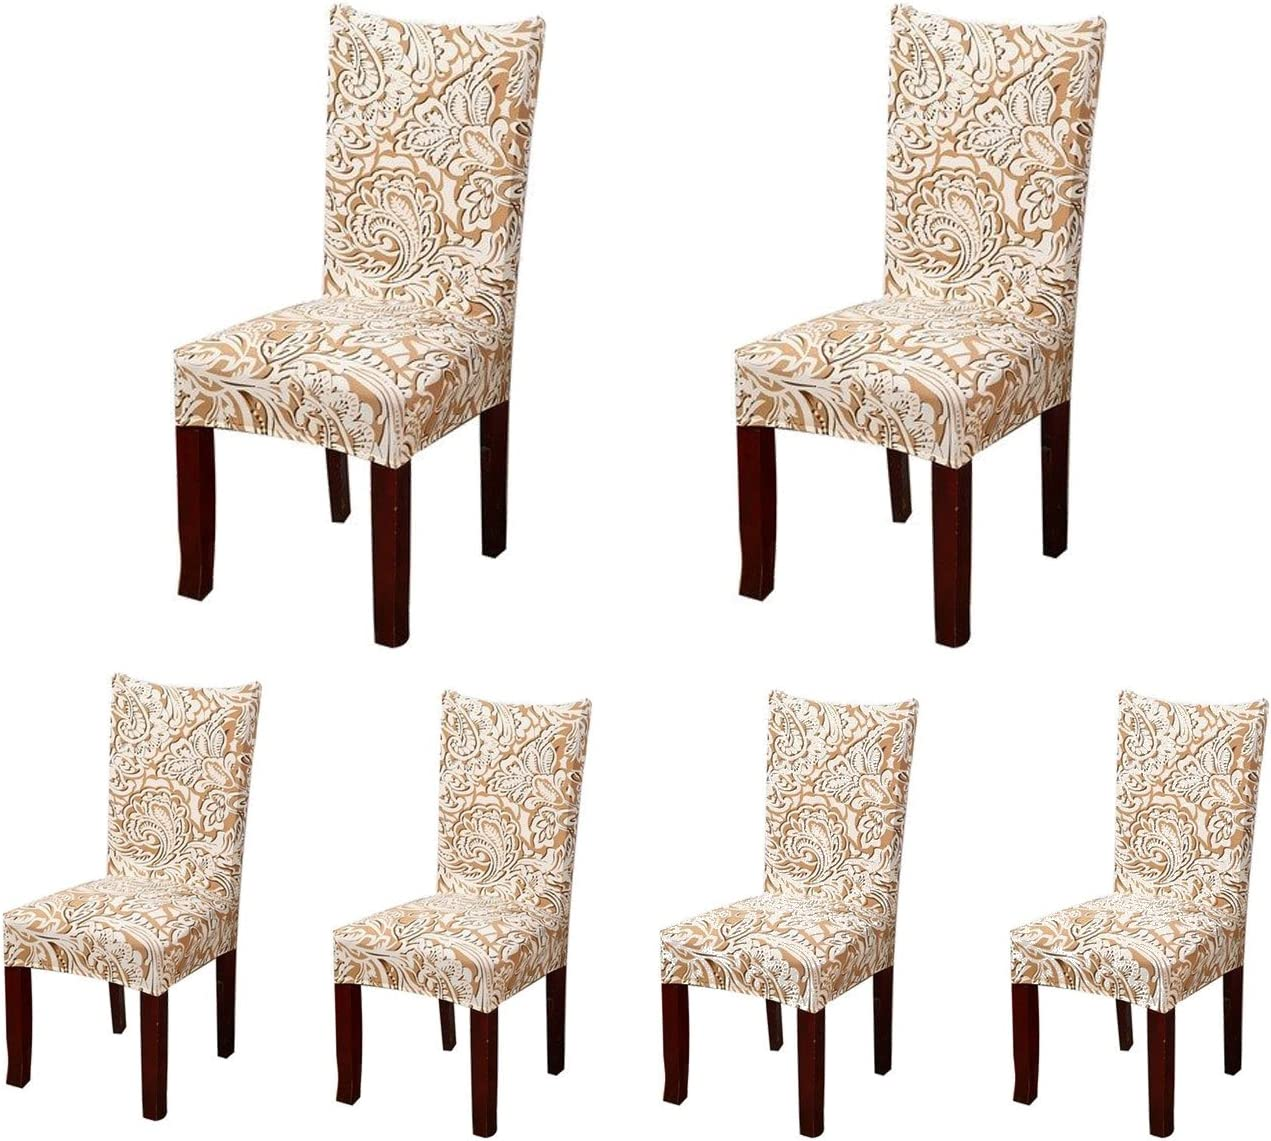 SoulFeel 6 x Soft Spandex Fit Stretch Short Dining Room Chair Covers with Printed Pattern, Banquet Chair Seat Protector Slipcover for Home Party Hotel Wedding Ceremony (Style 2)